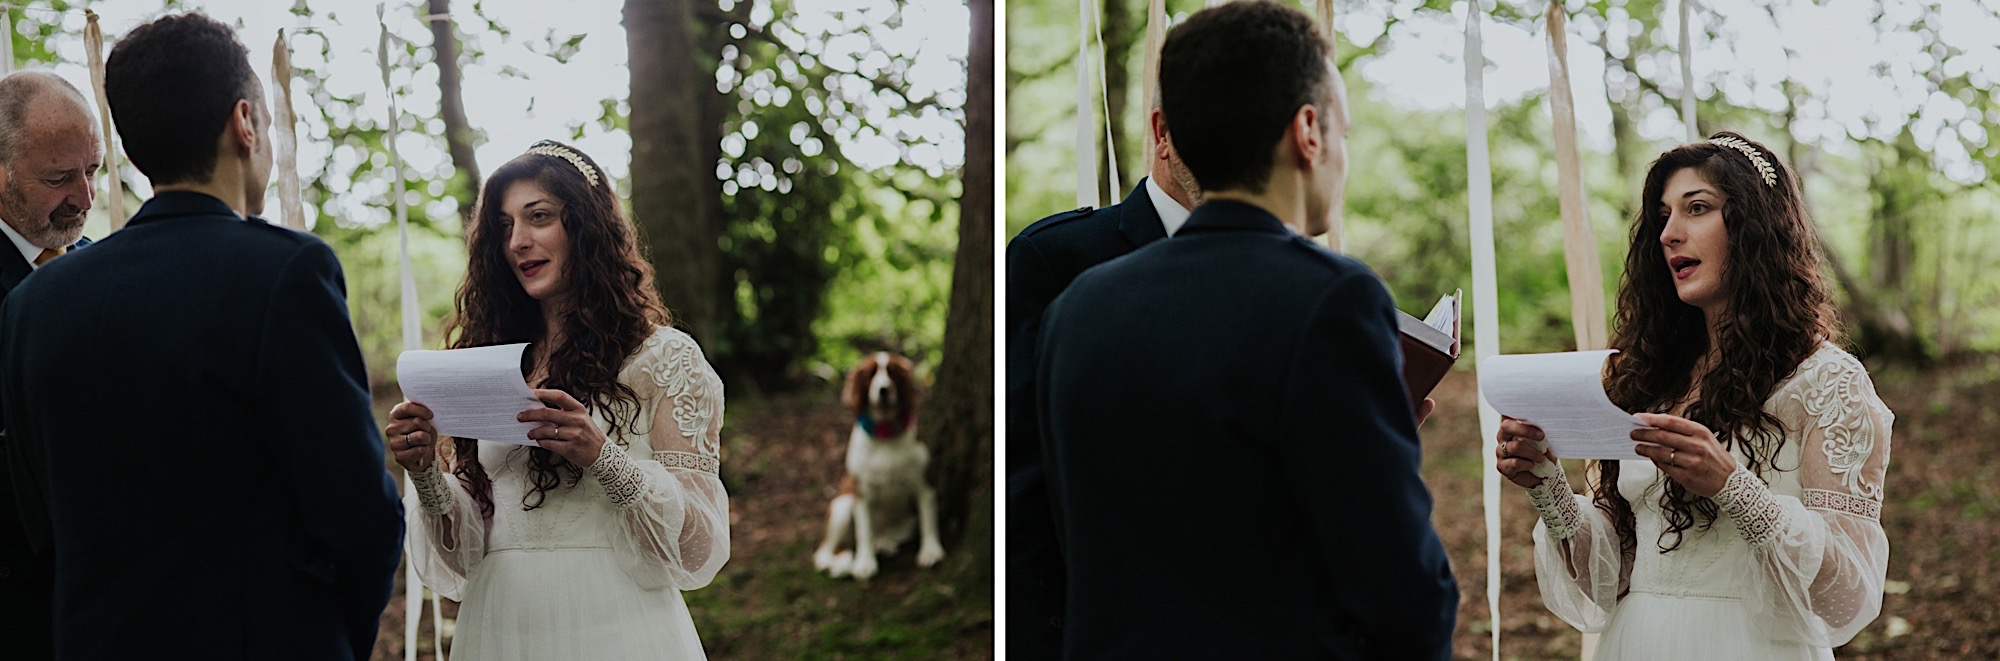 dog watching over the wedding ceremony